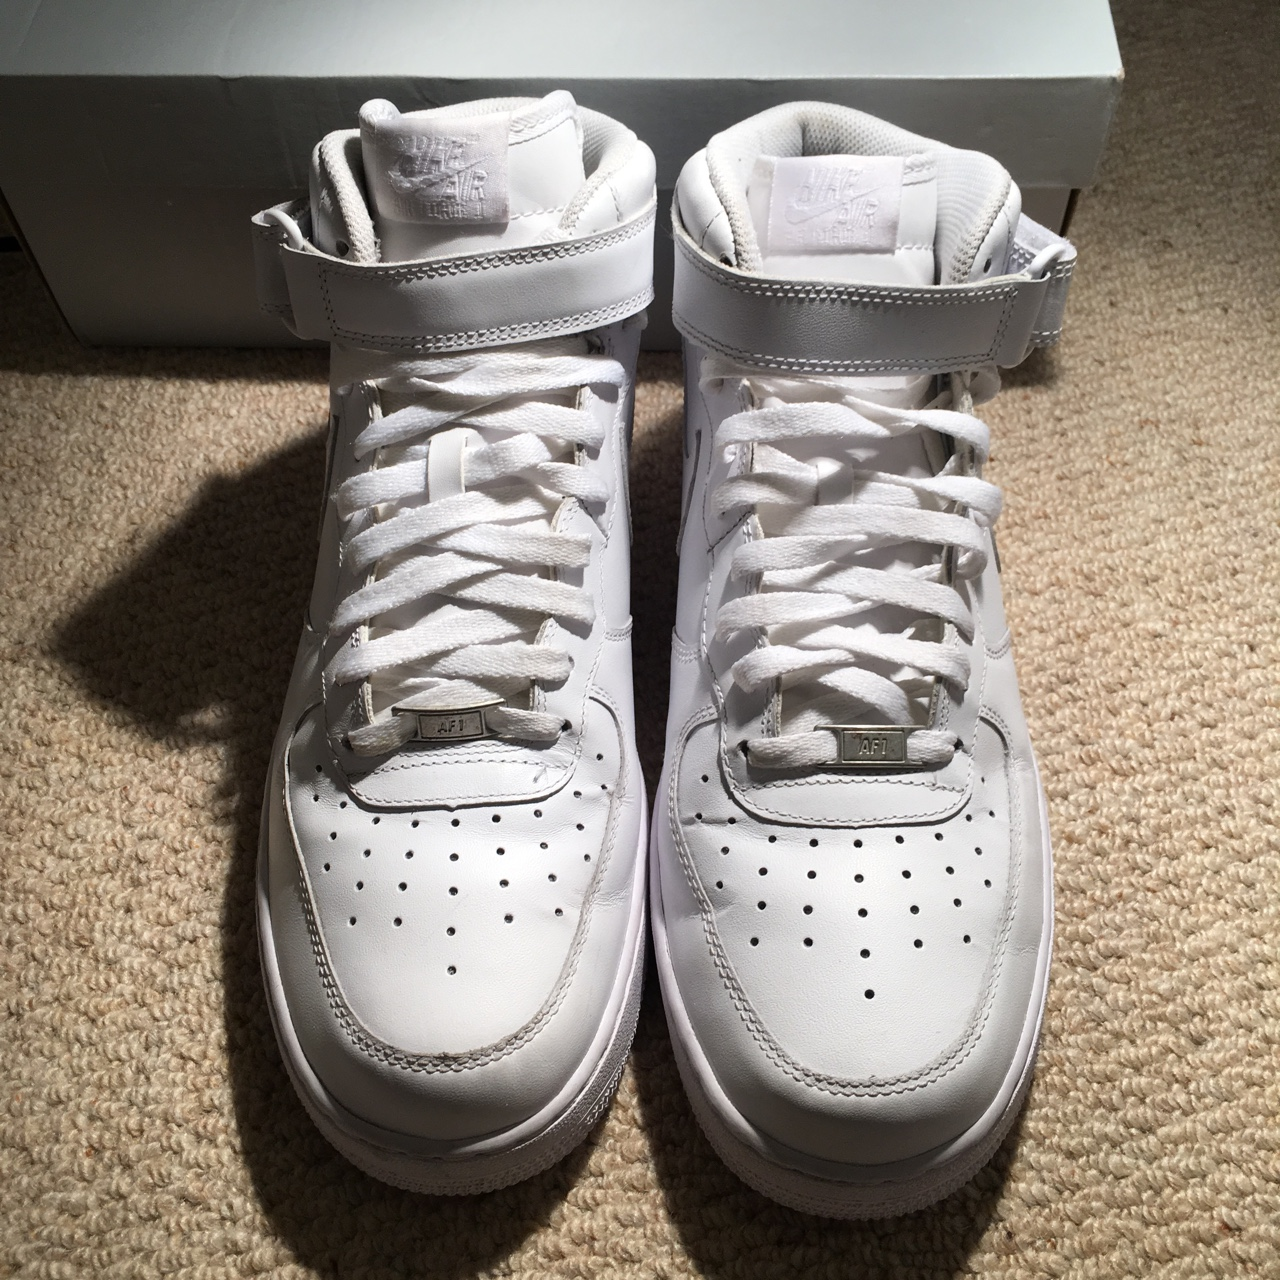 Nike Air Force 1 Mid '07 White used but